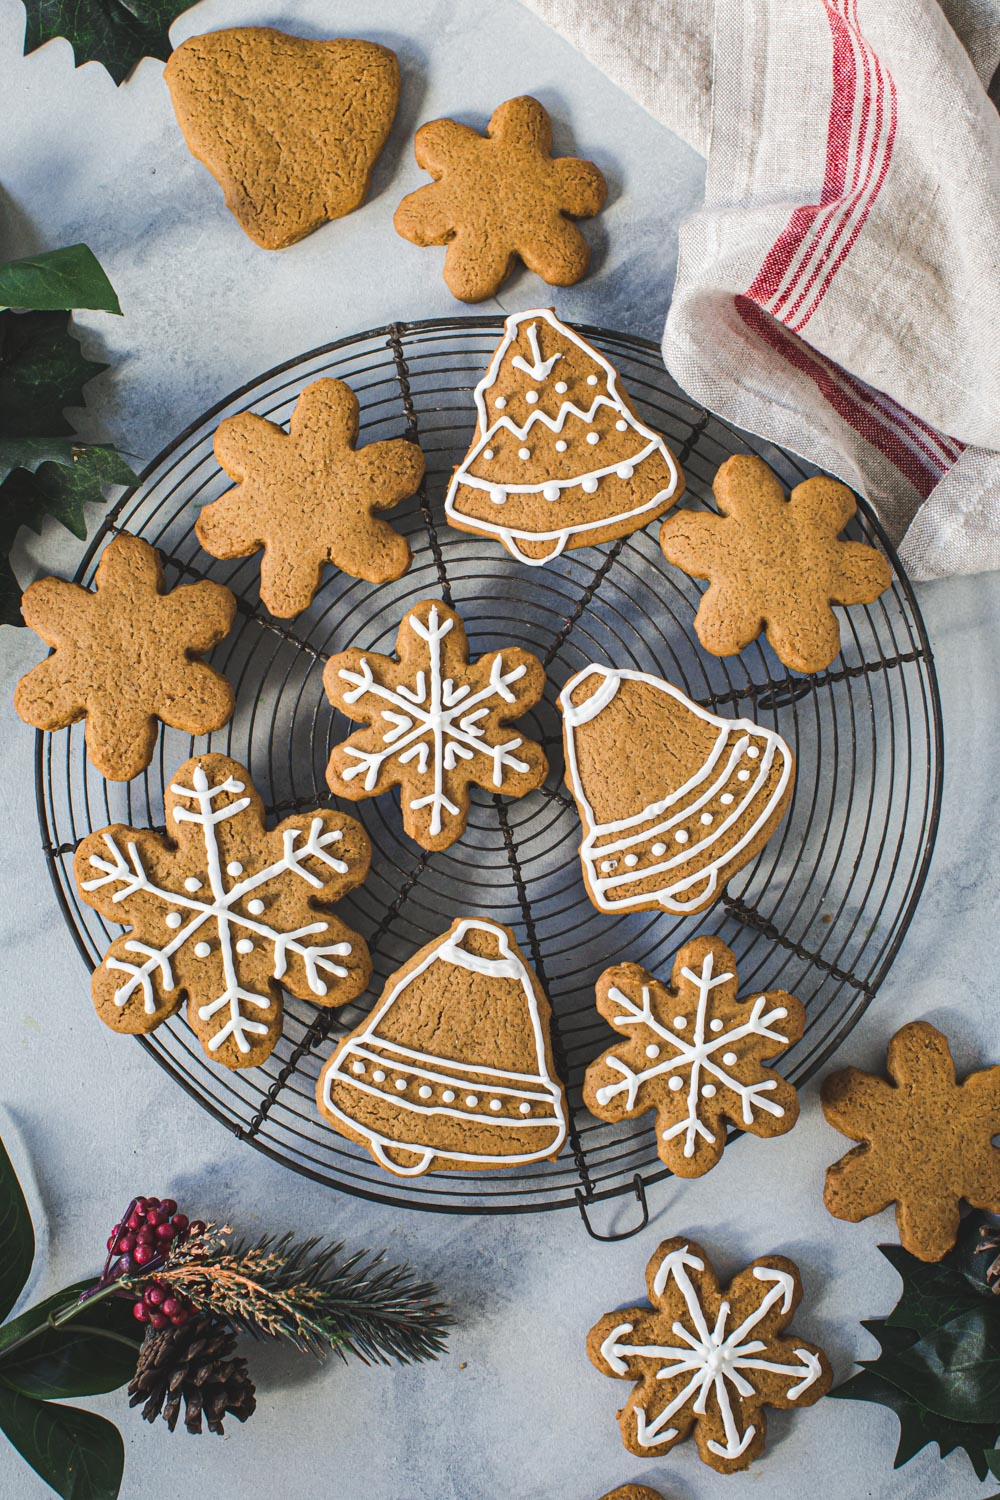 Iced gingerbread cutout cookies on a wire rack.